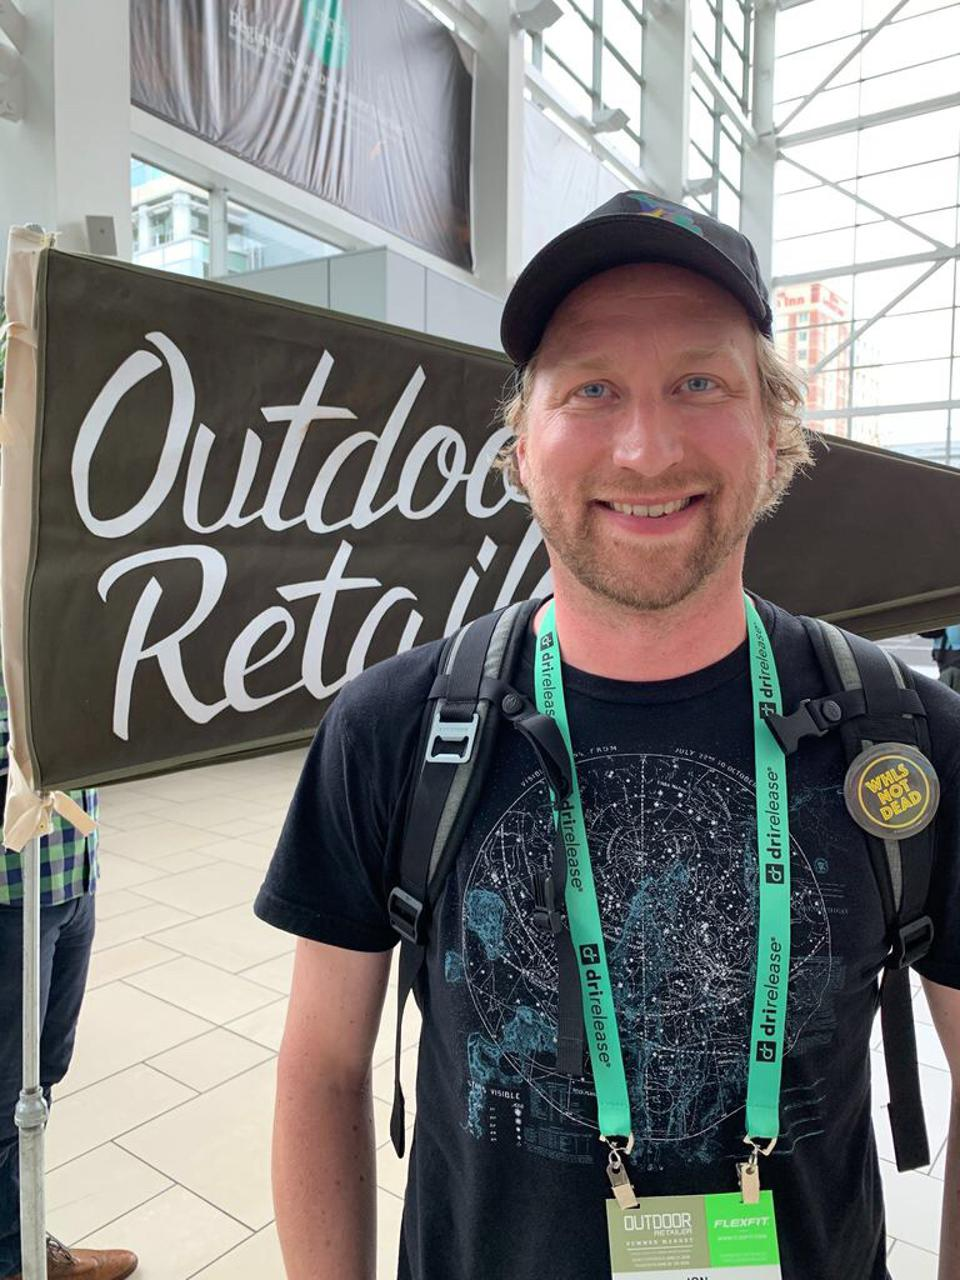 A photo of Envoy CEO Jon Faber at the Outdoor Retailer show in Denver on June 17.